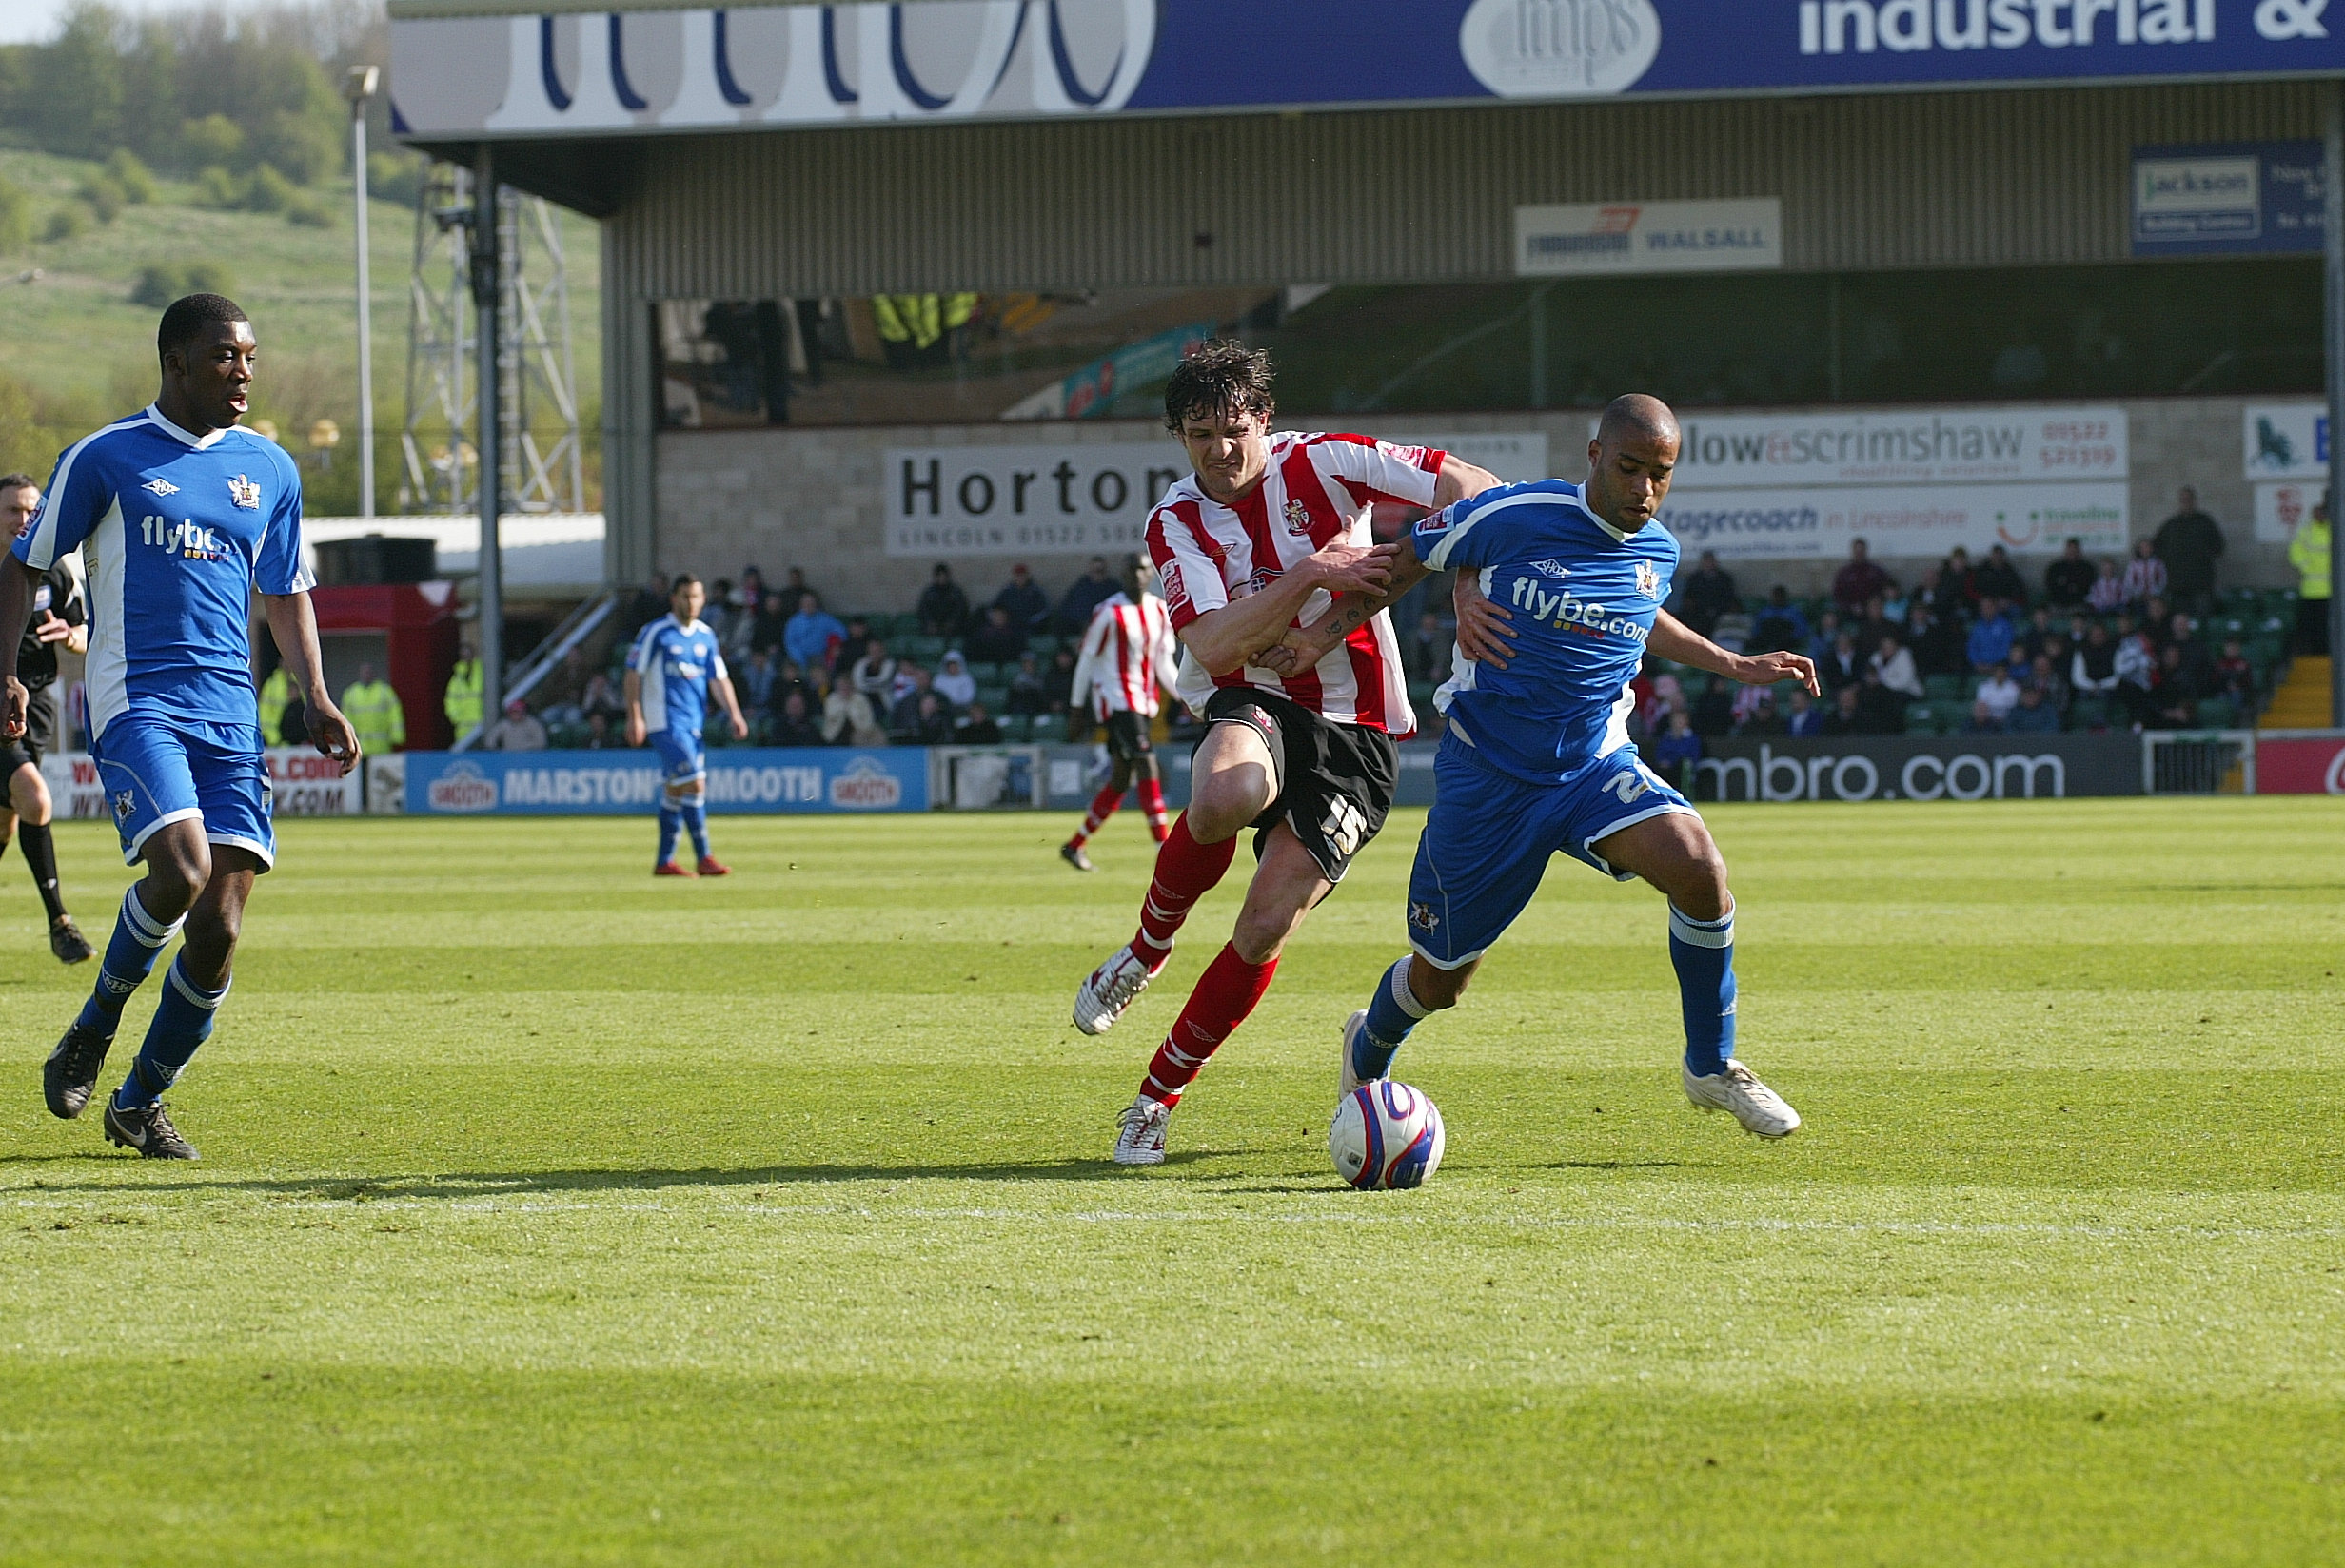 Exeter City 18.04.09 204